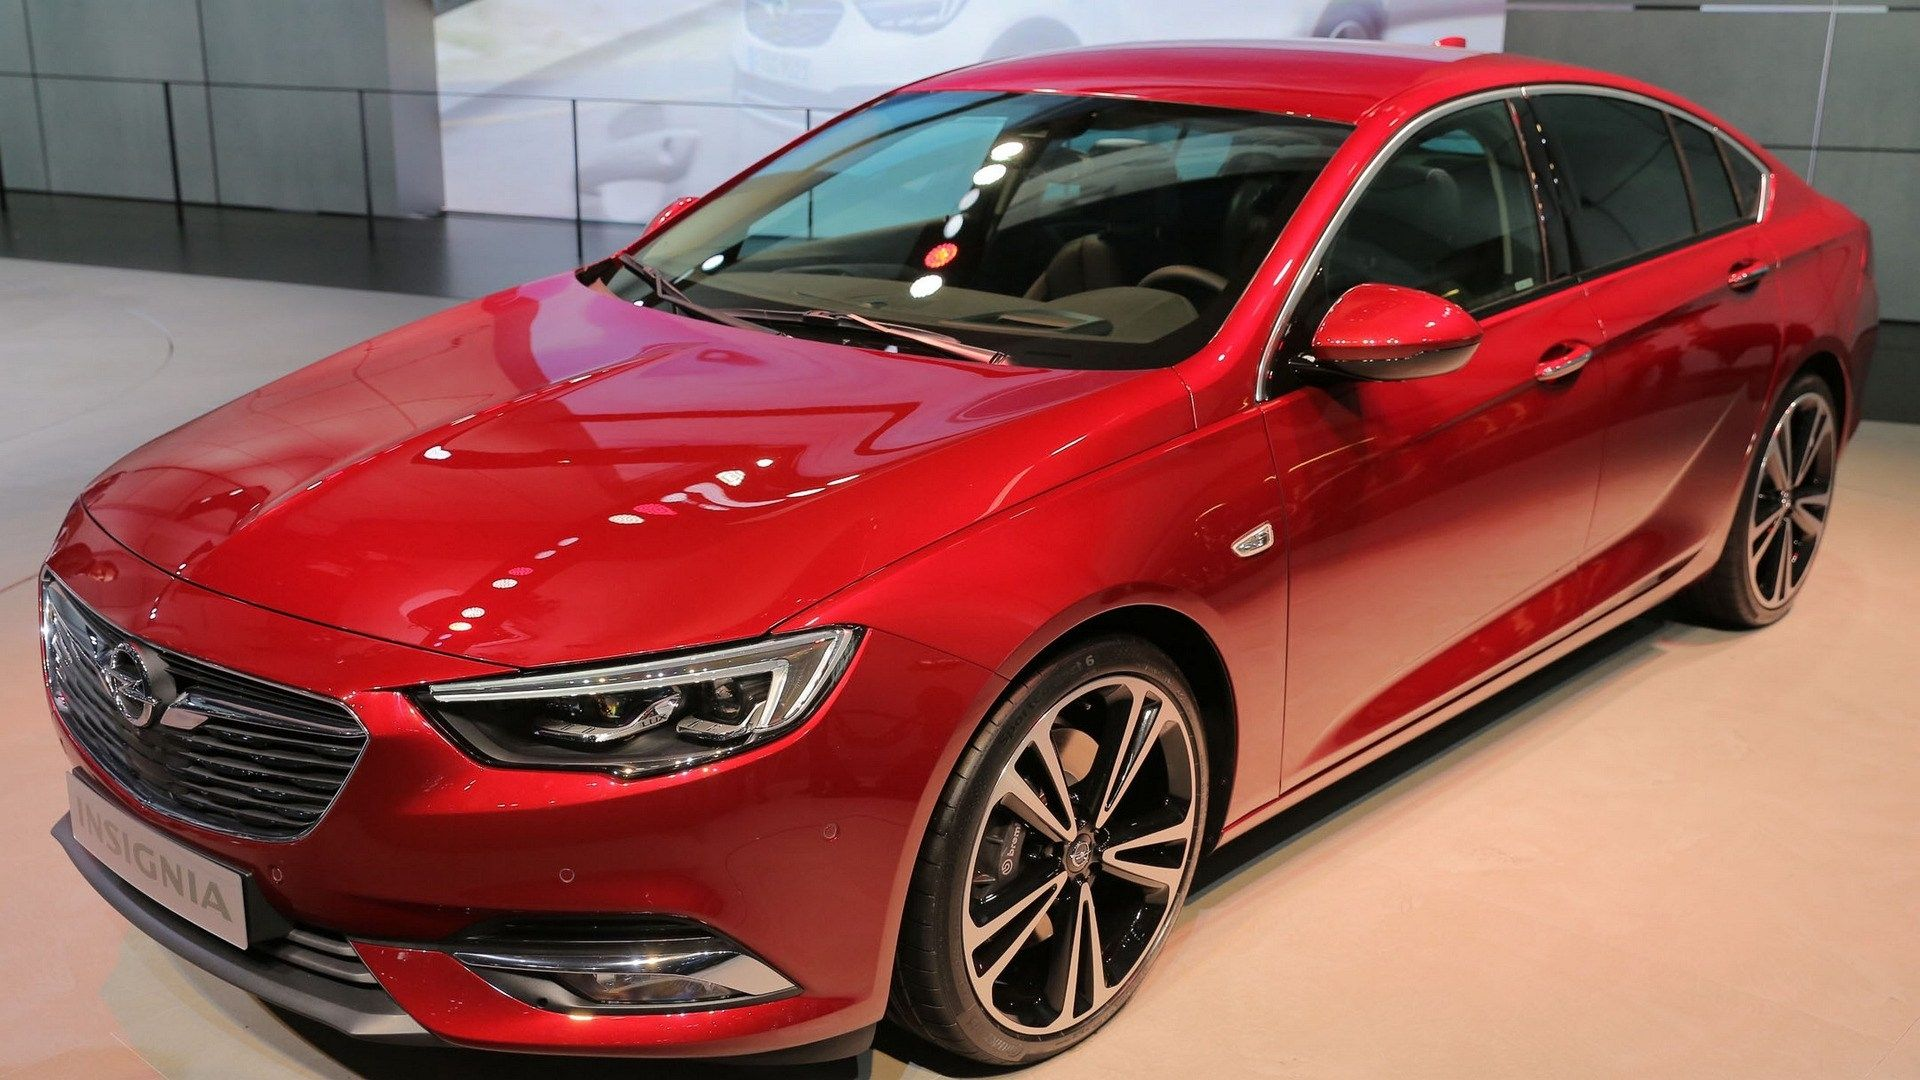 opel astra 2020 price in egypt concept  opel car car